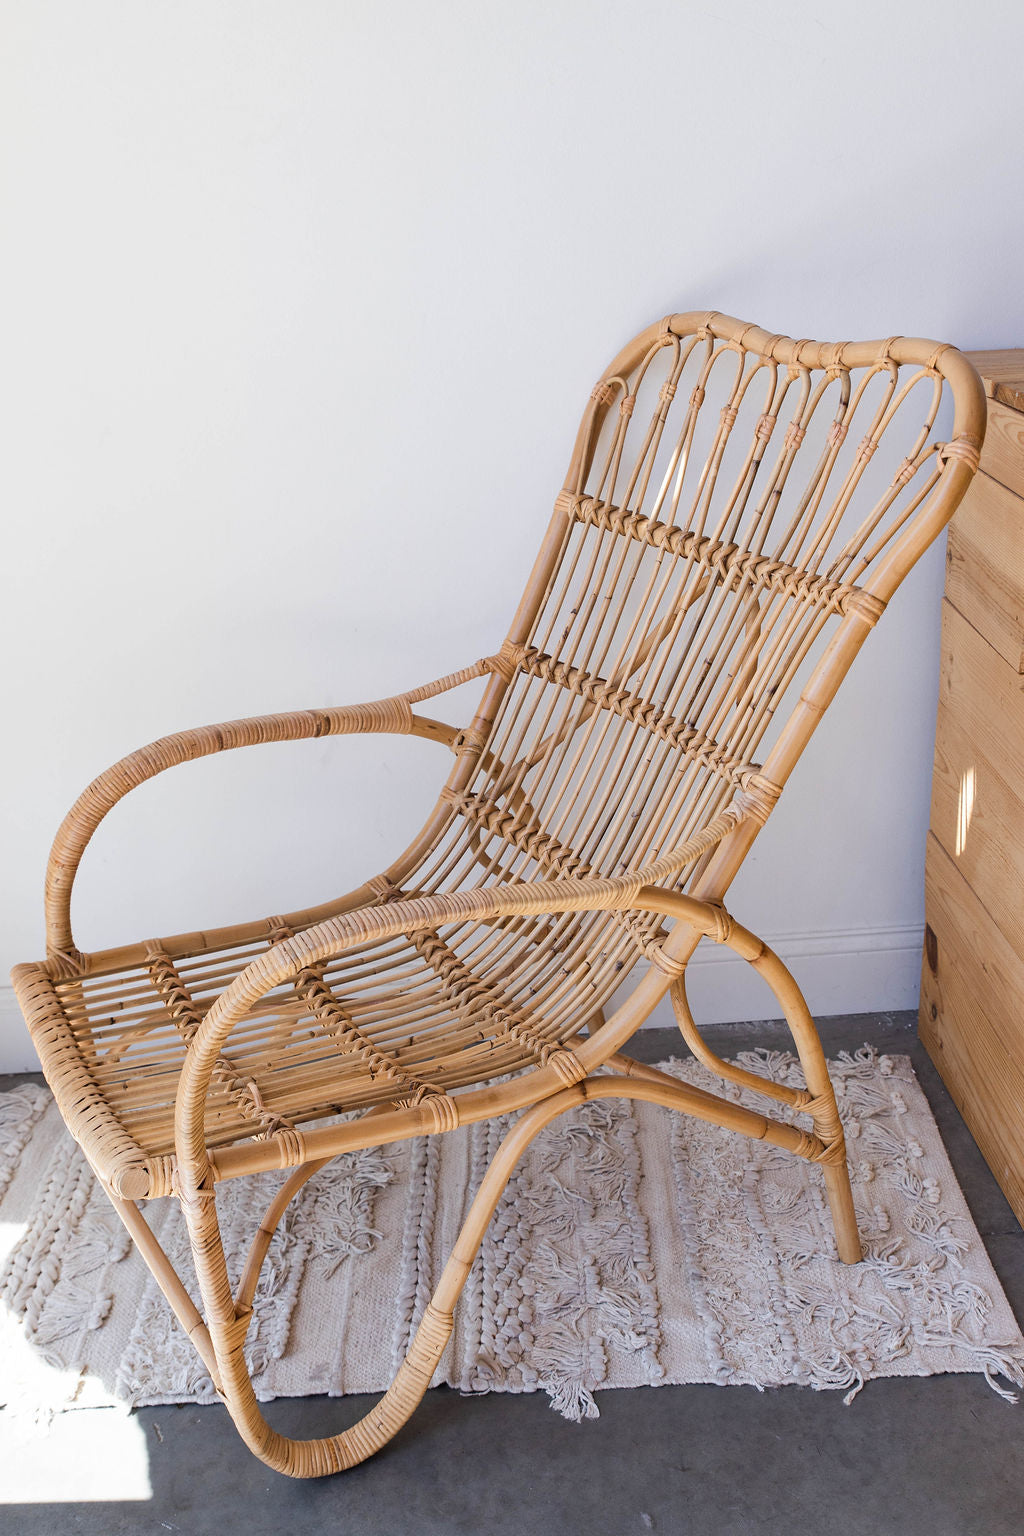 mode, rattan lounge chair